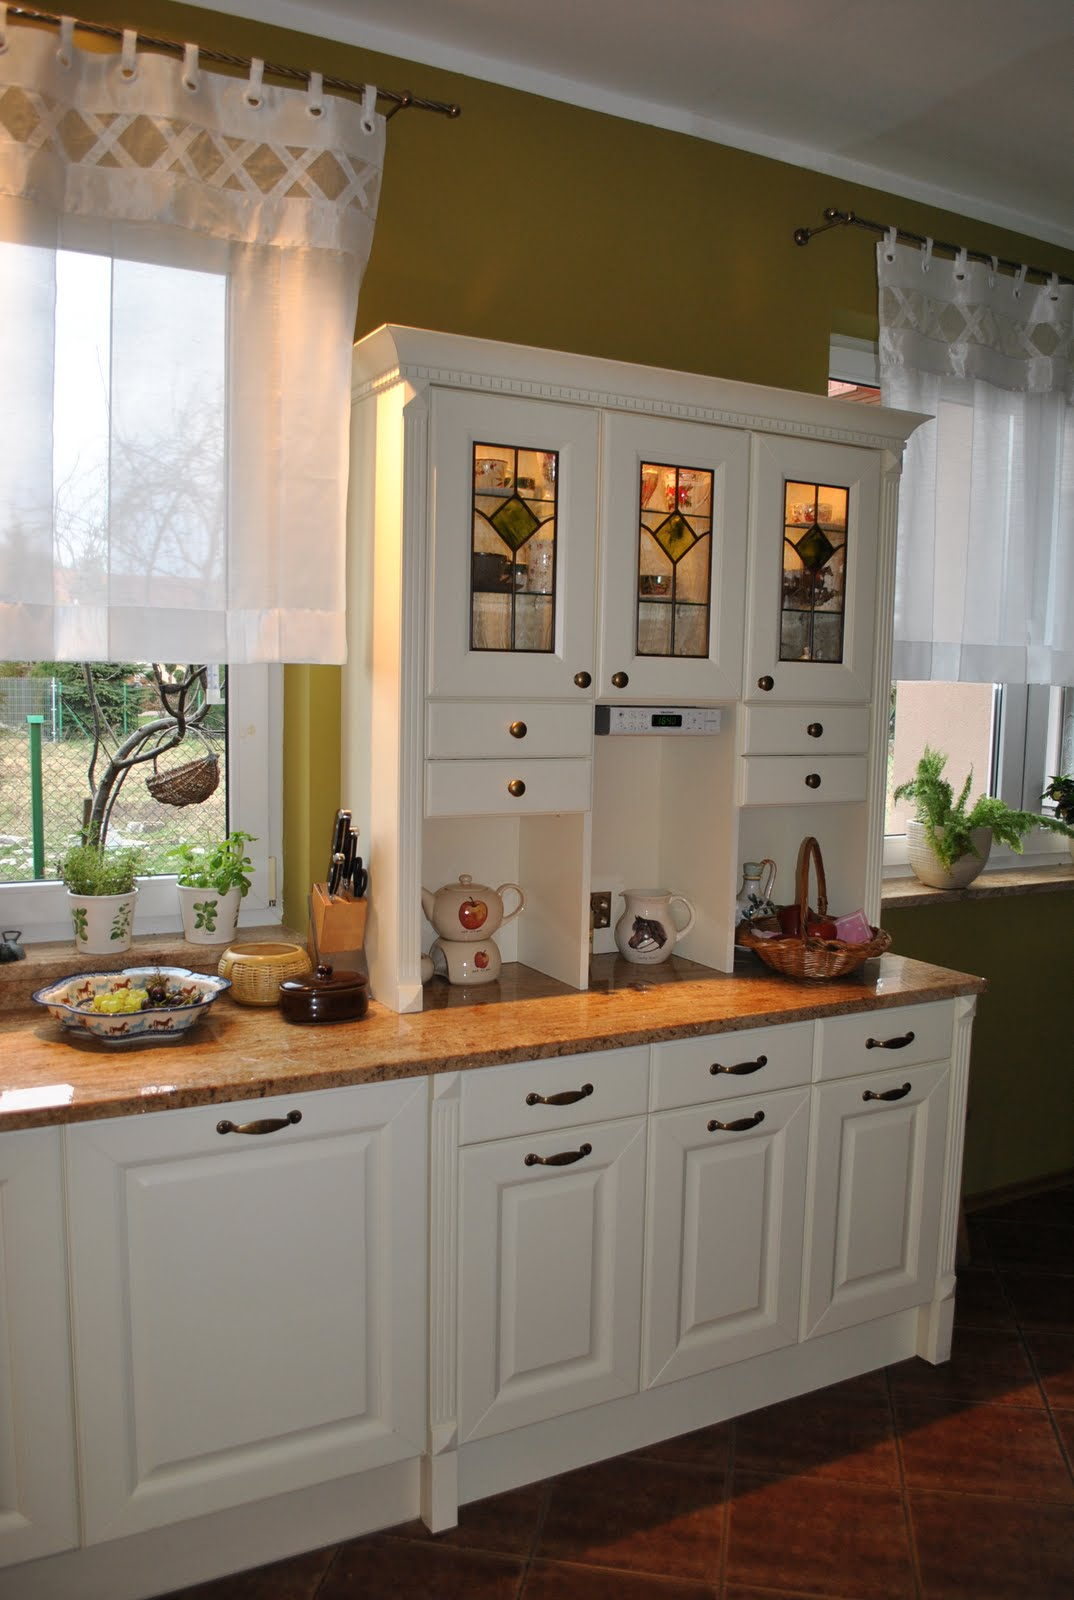 English country kitchen pictures English Country Style Kitchens - Interior Design Ideas